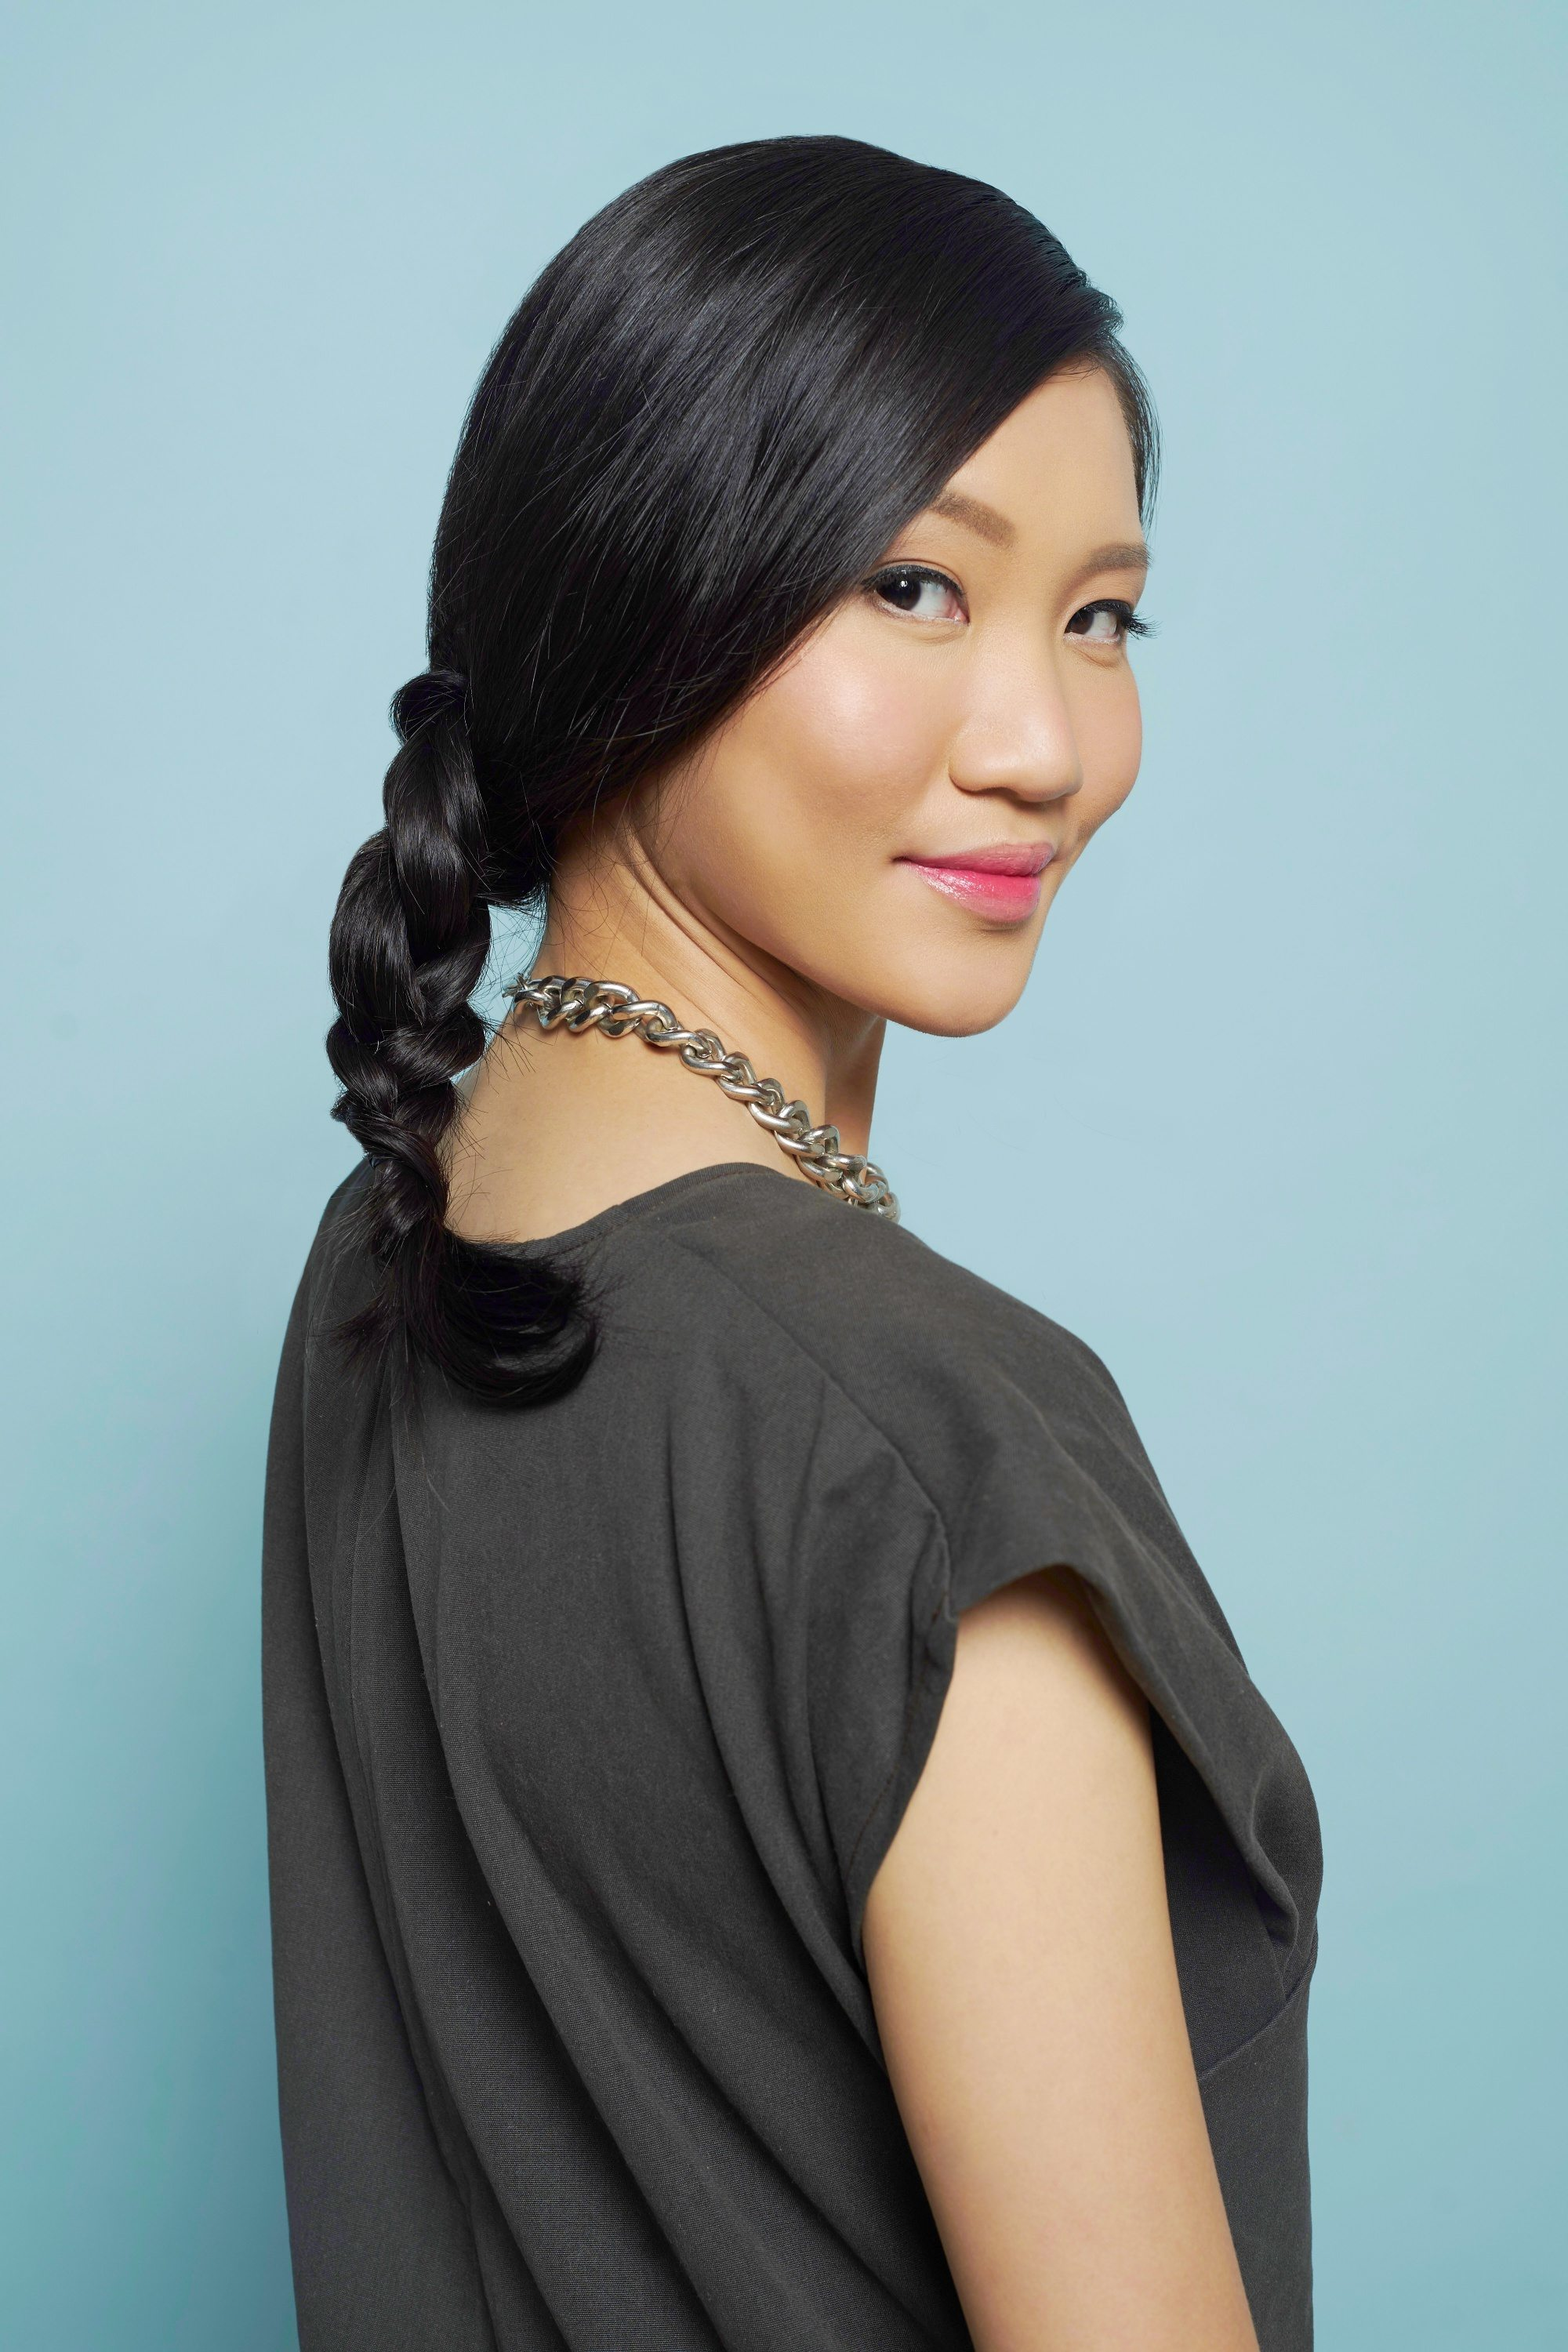 Hair care hacks: Asian woman with long black hair in a side braid wearing a dark gray top